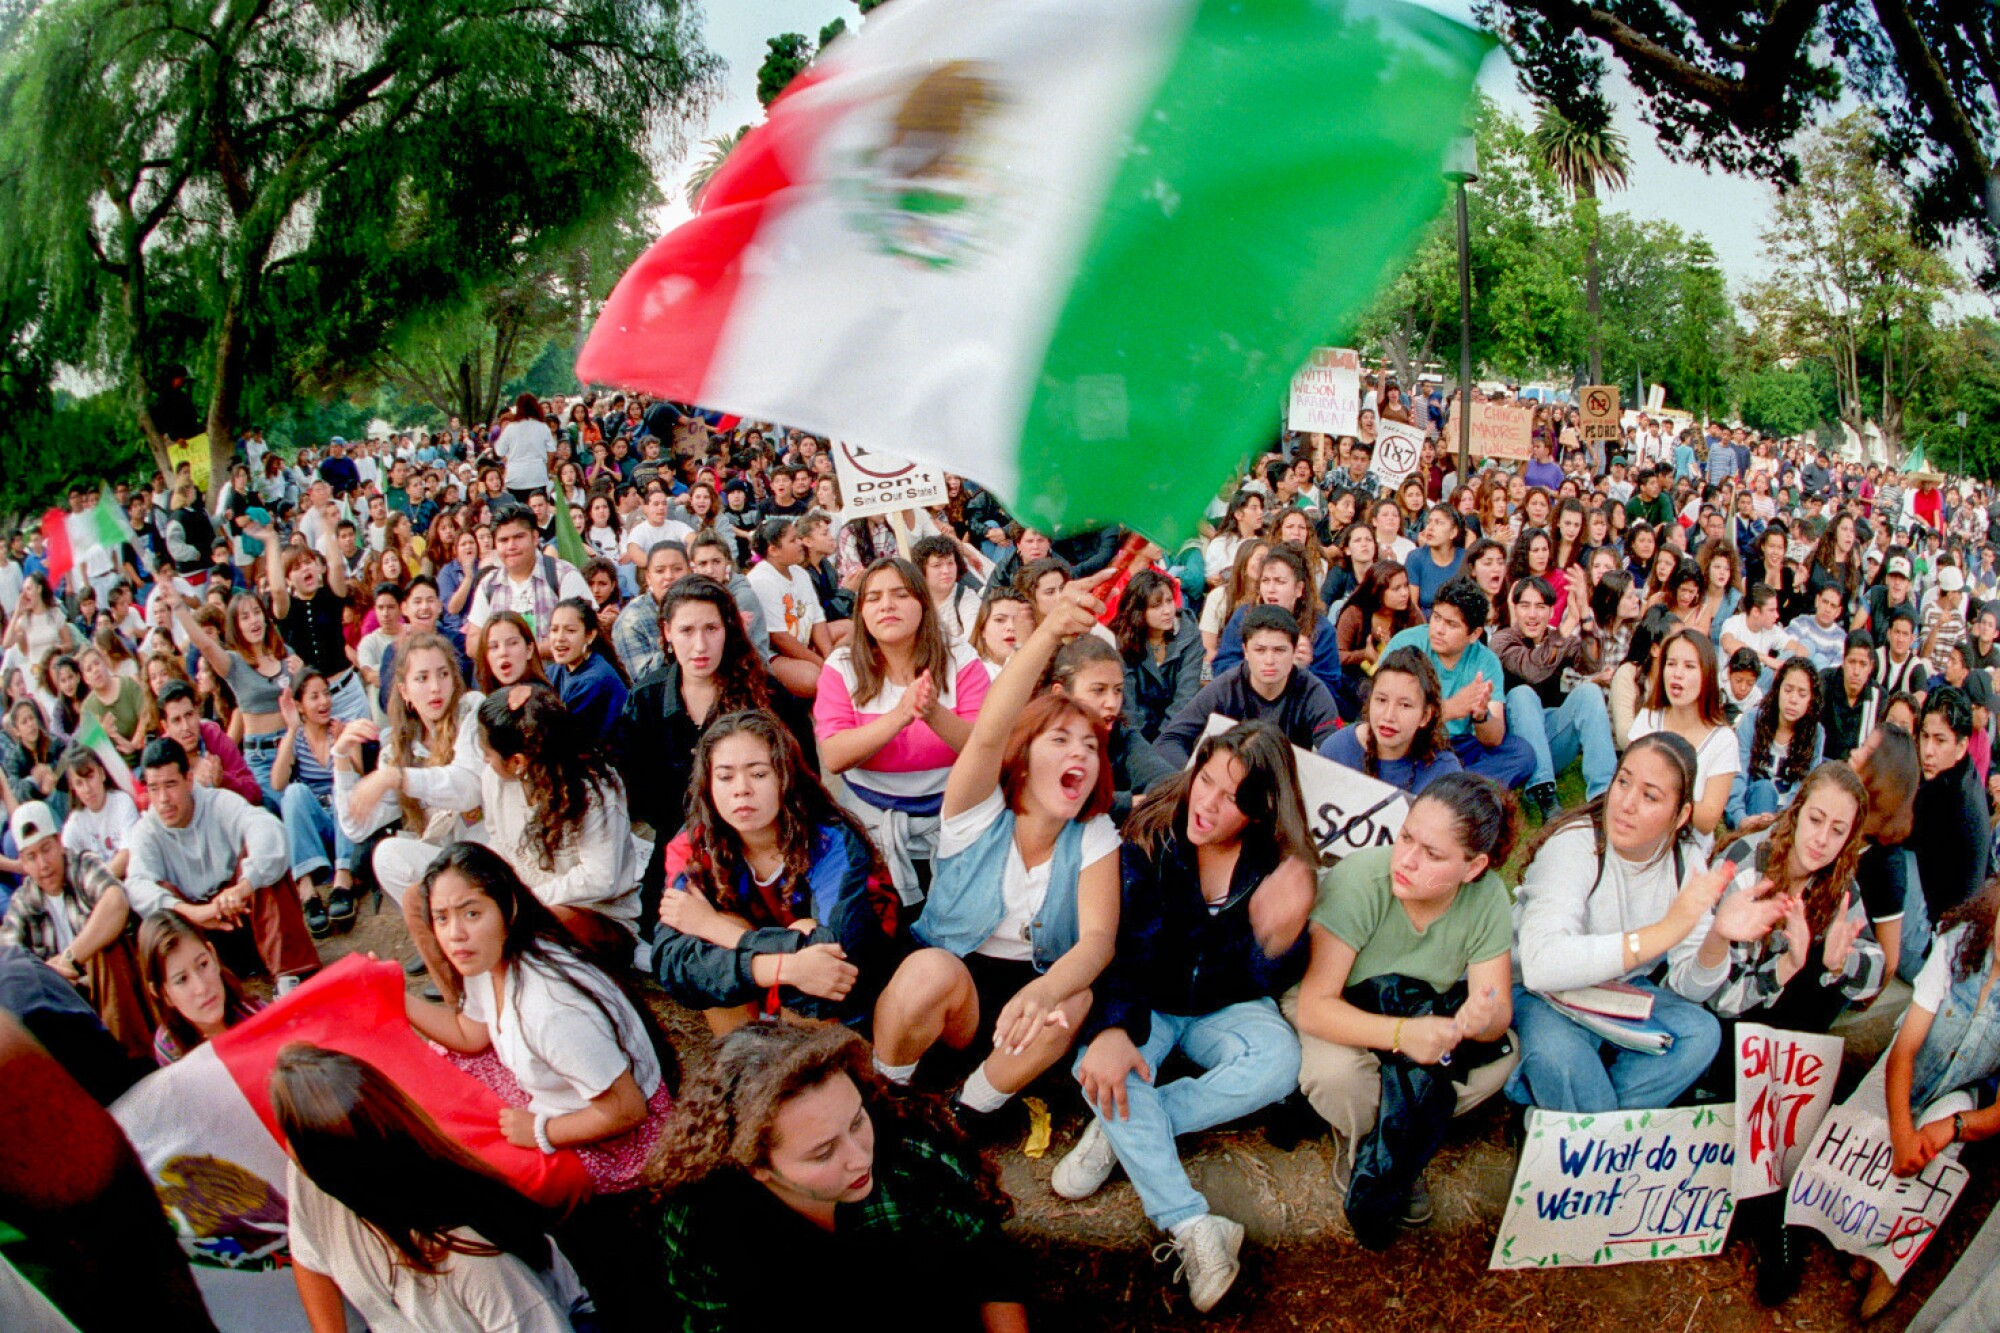 1994 protest at Plaza Park in Oxnard